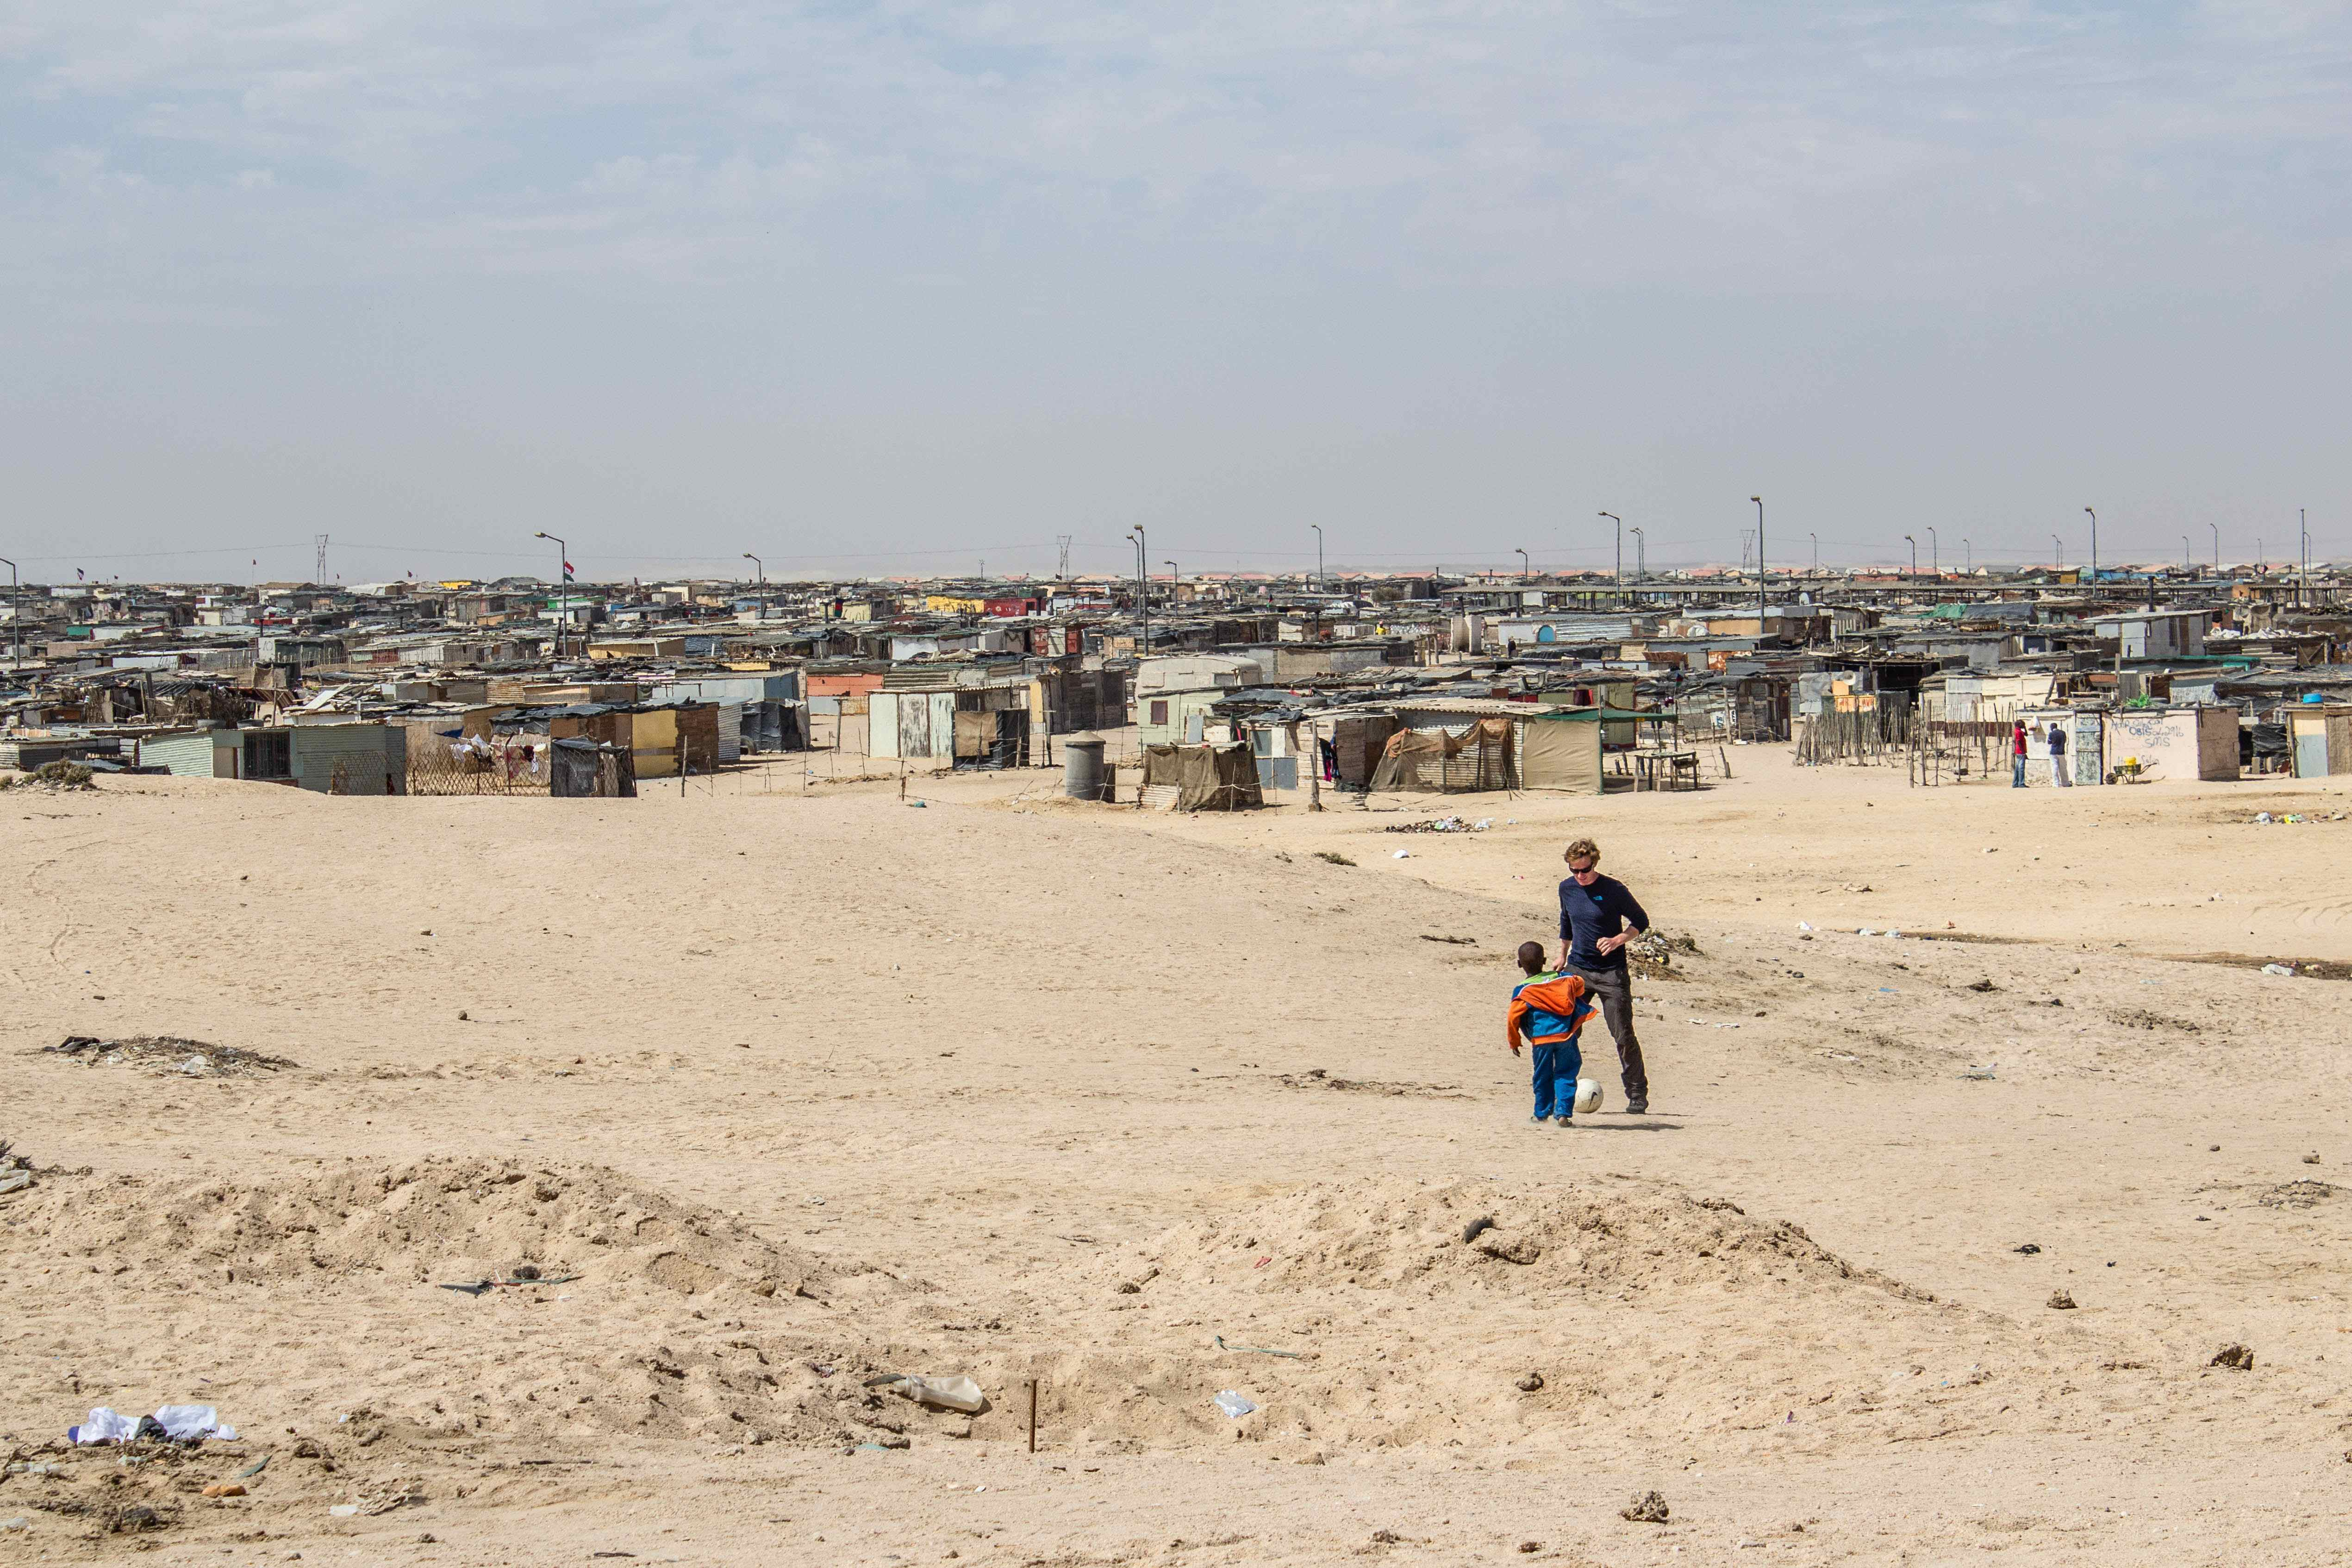 township in namibia with a man and boy playing soccer in the foreground